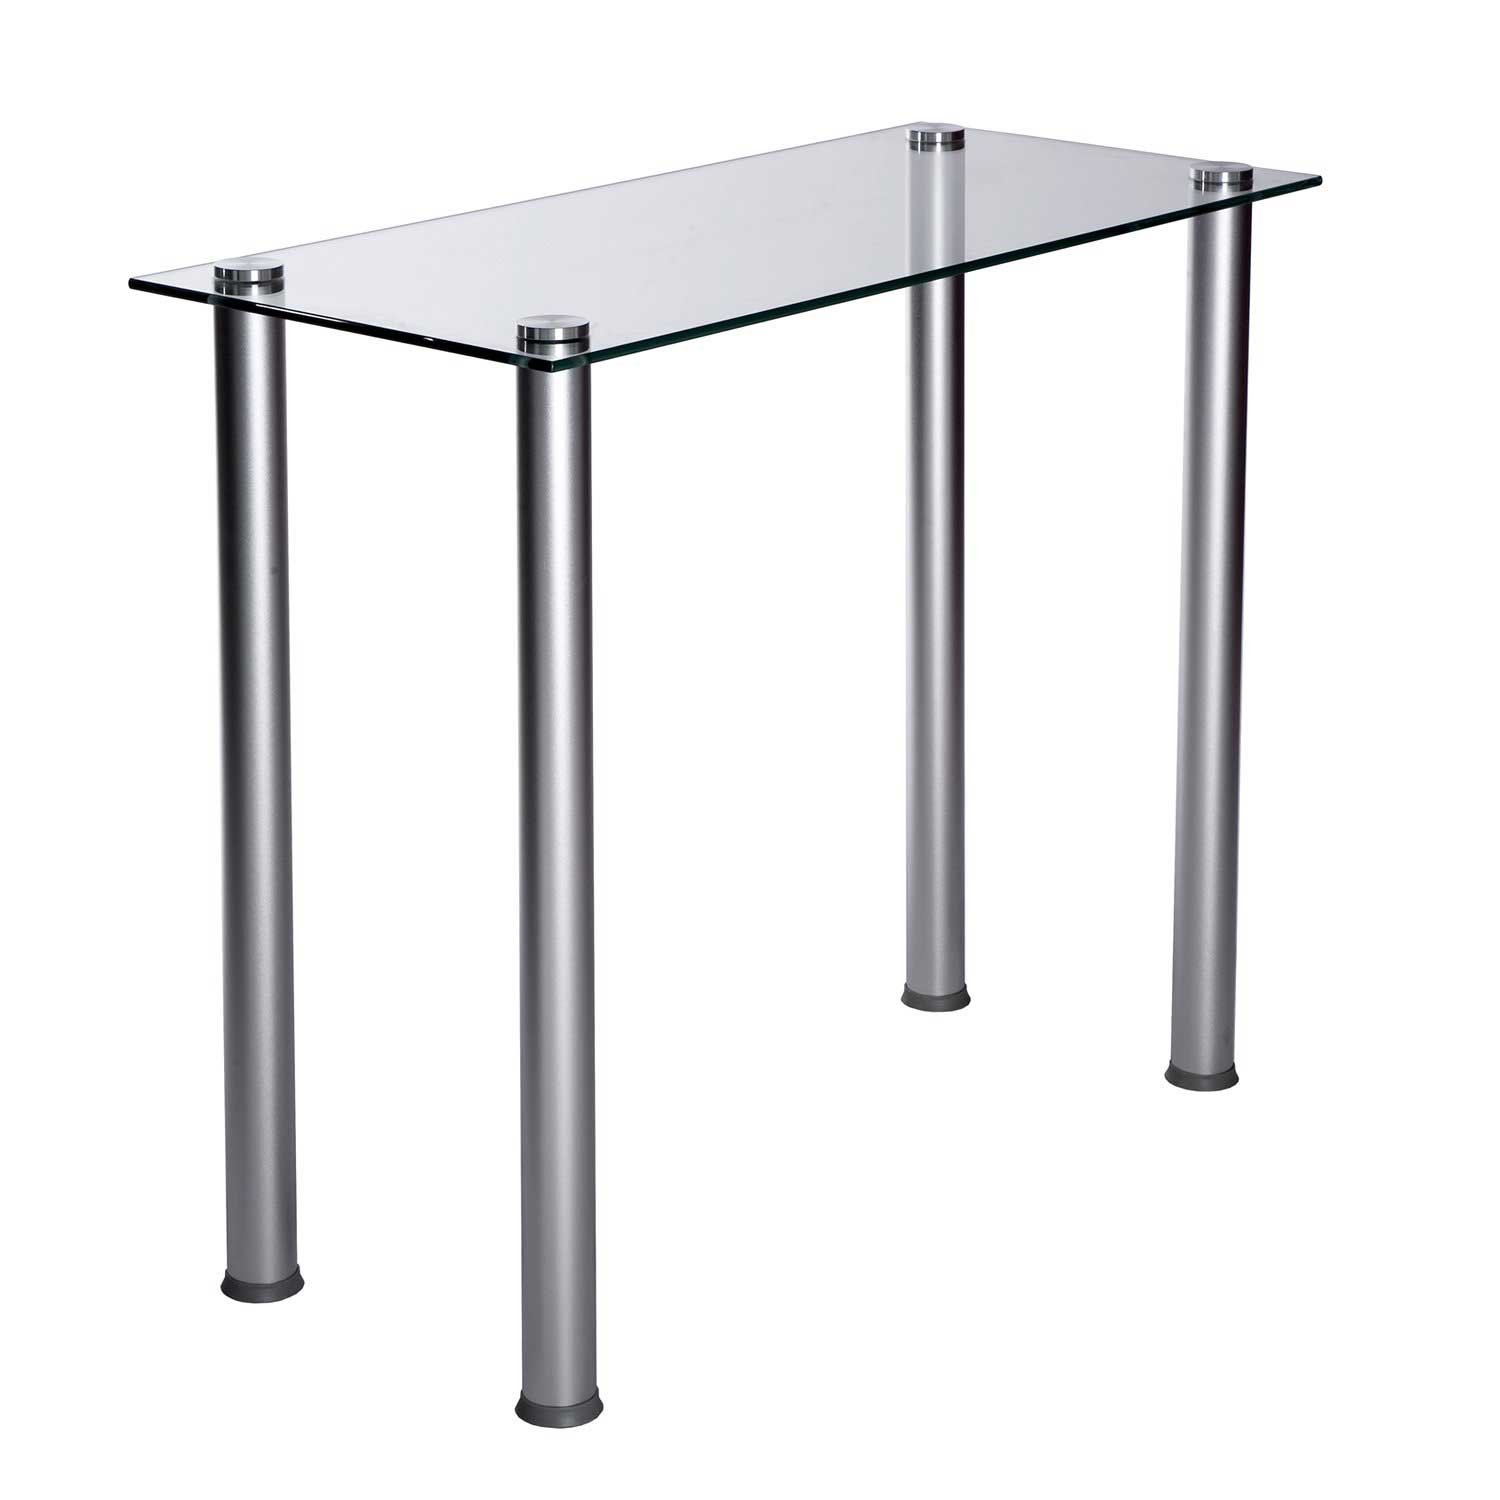 Modern clear glass metal table for writing